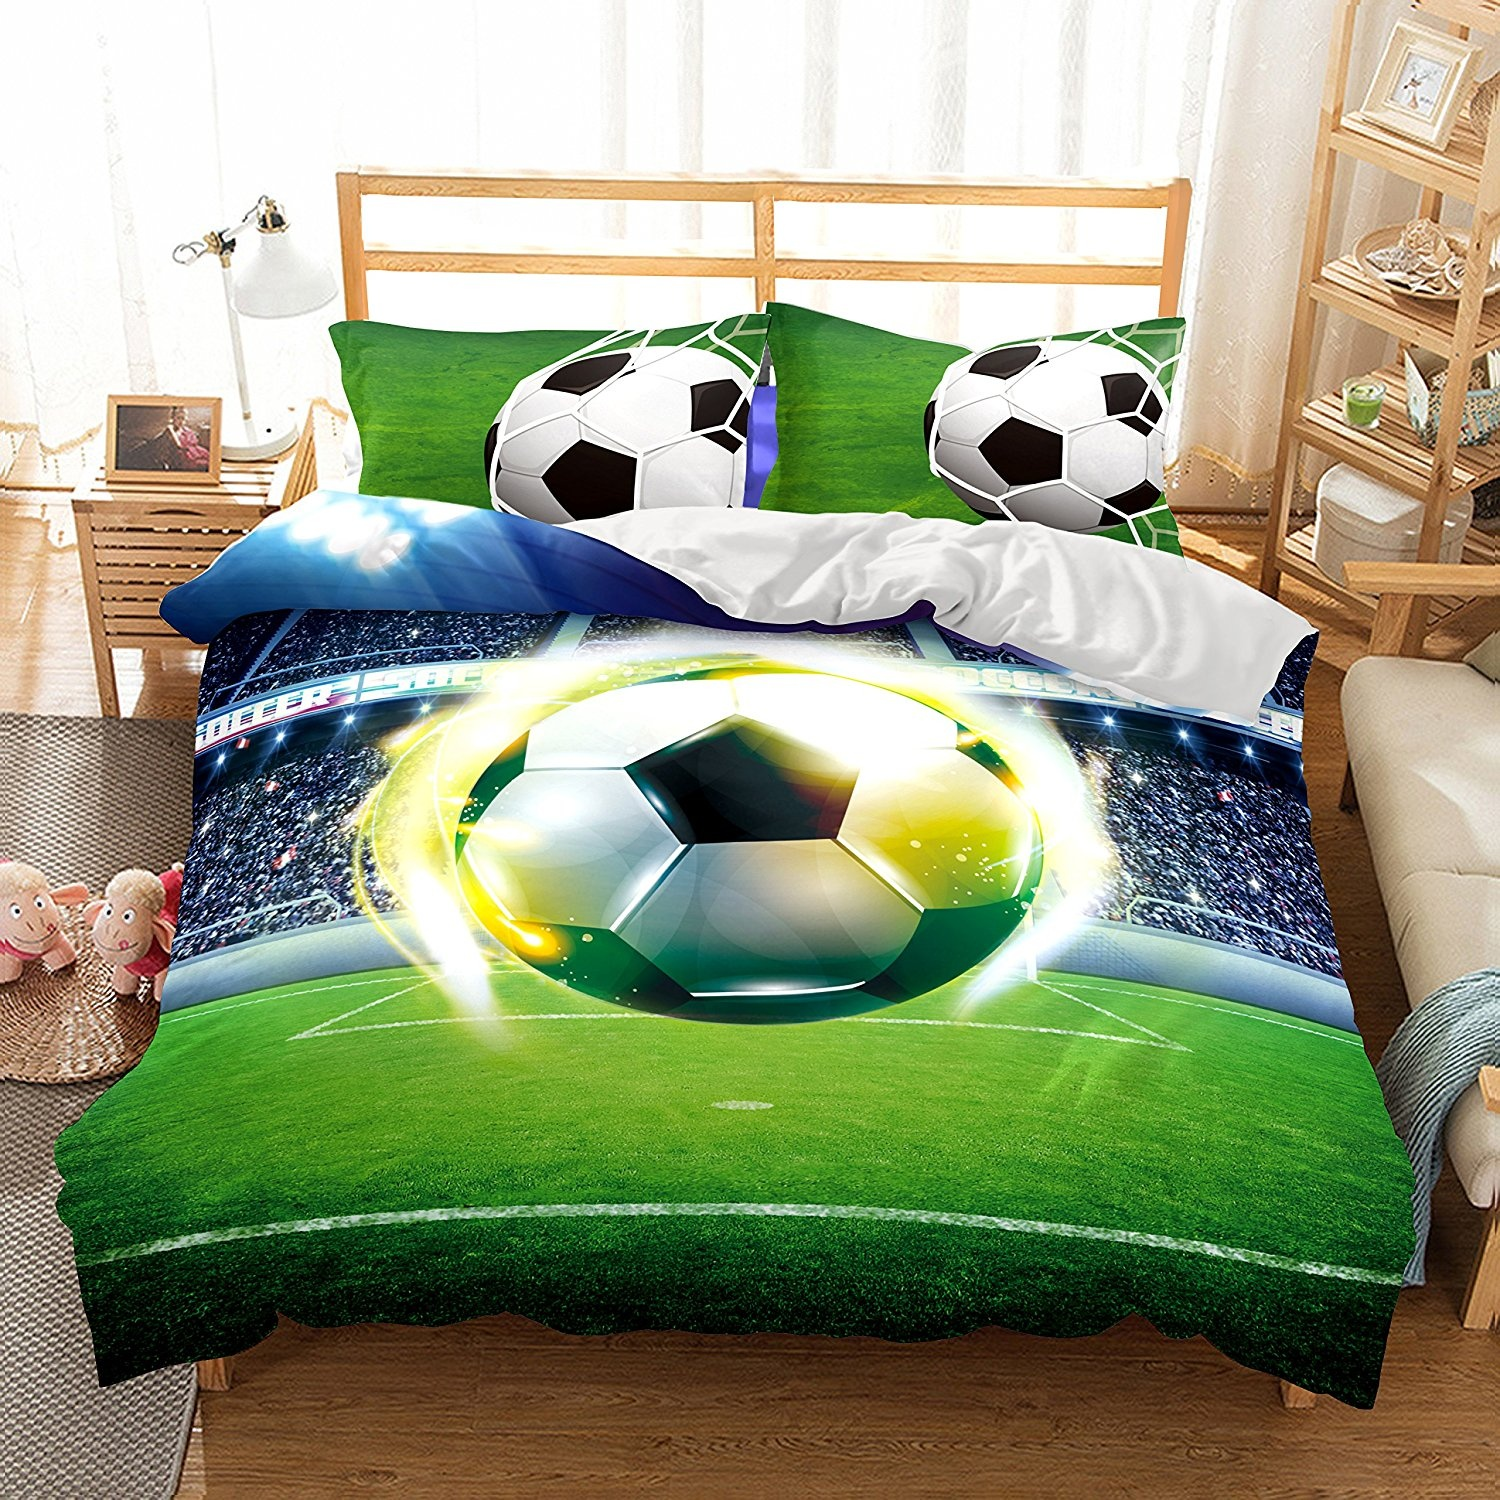 room bedding bed ideas for bedroom new darealash trend best decor of com soccer contemporary boys teen decorating awesome